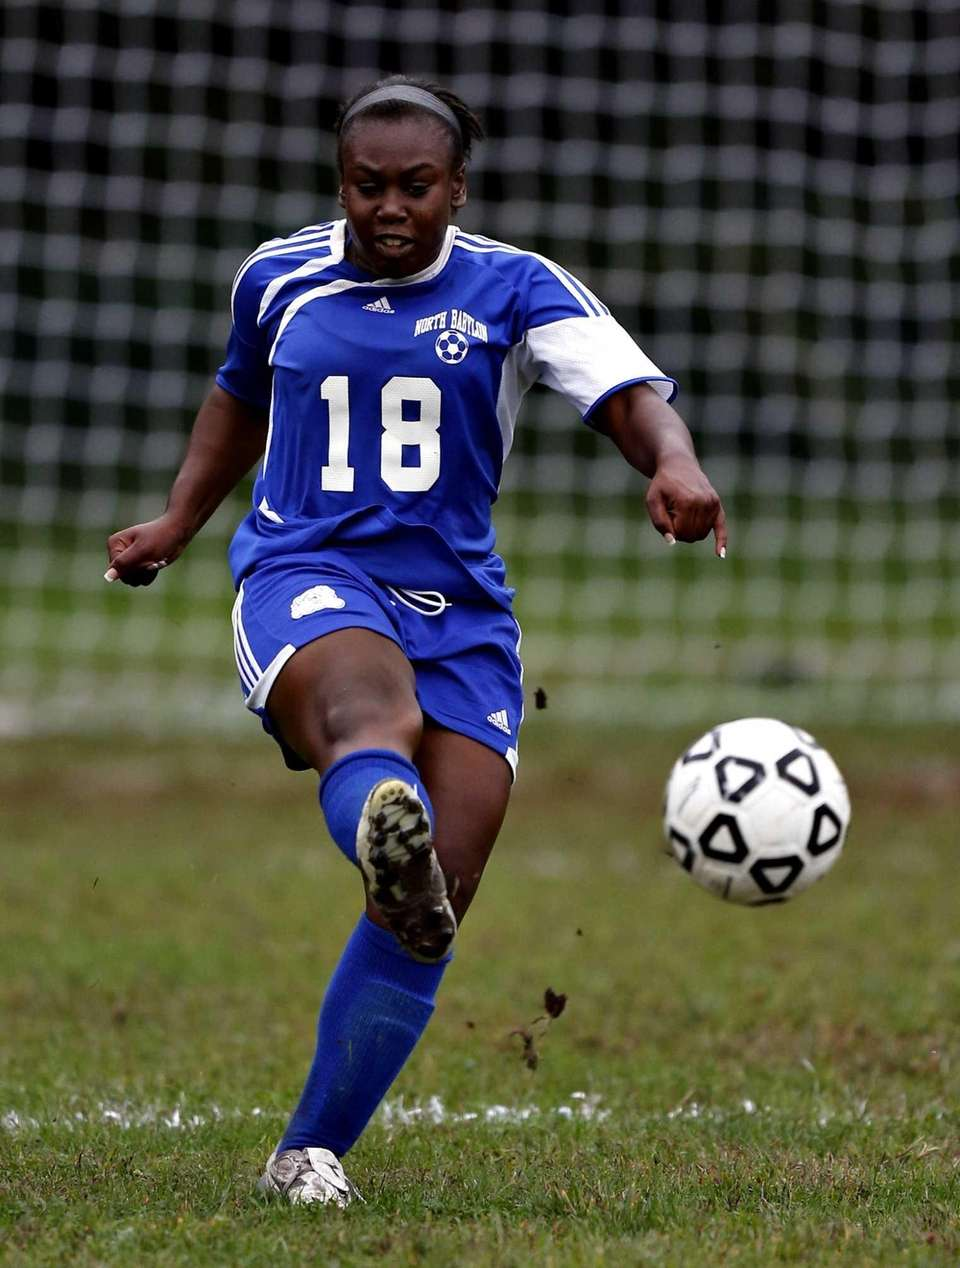 North Babylon's Lauren Lester advances the ball upfield